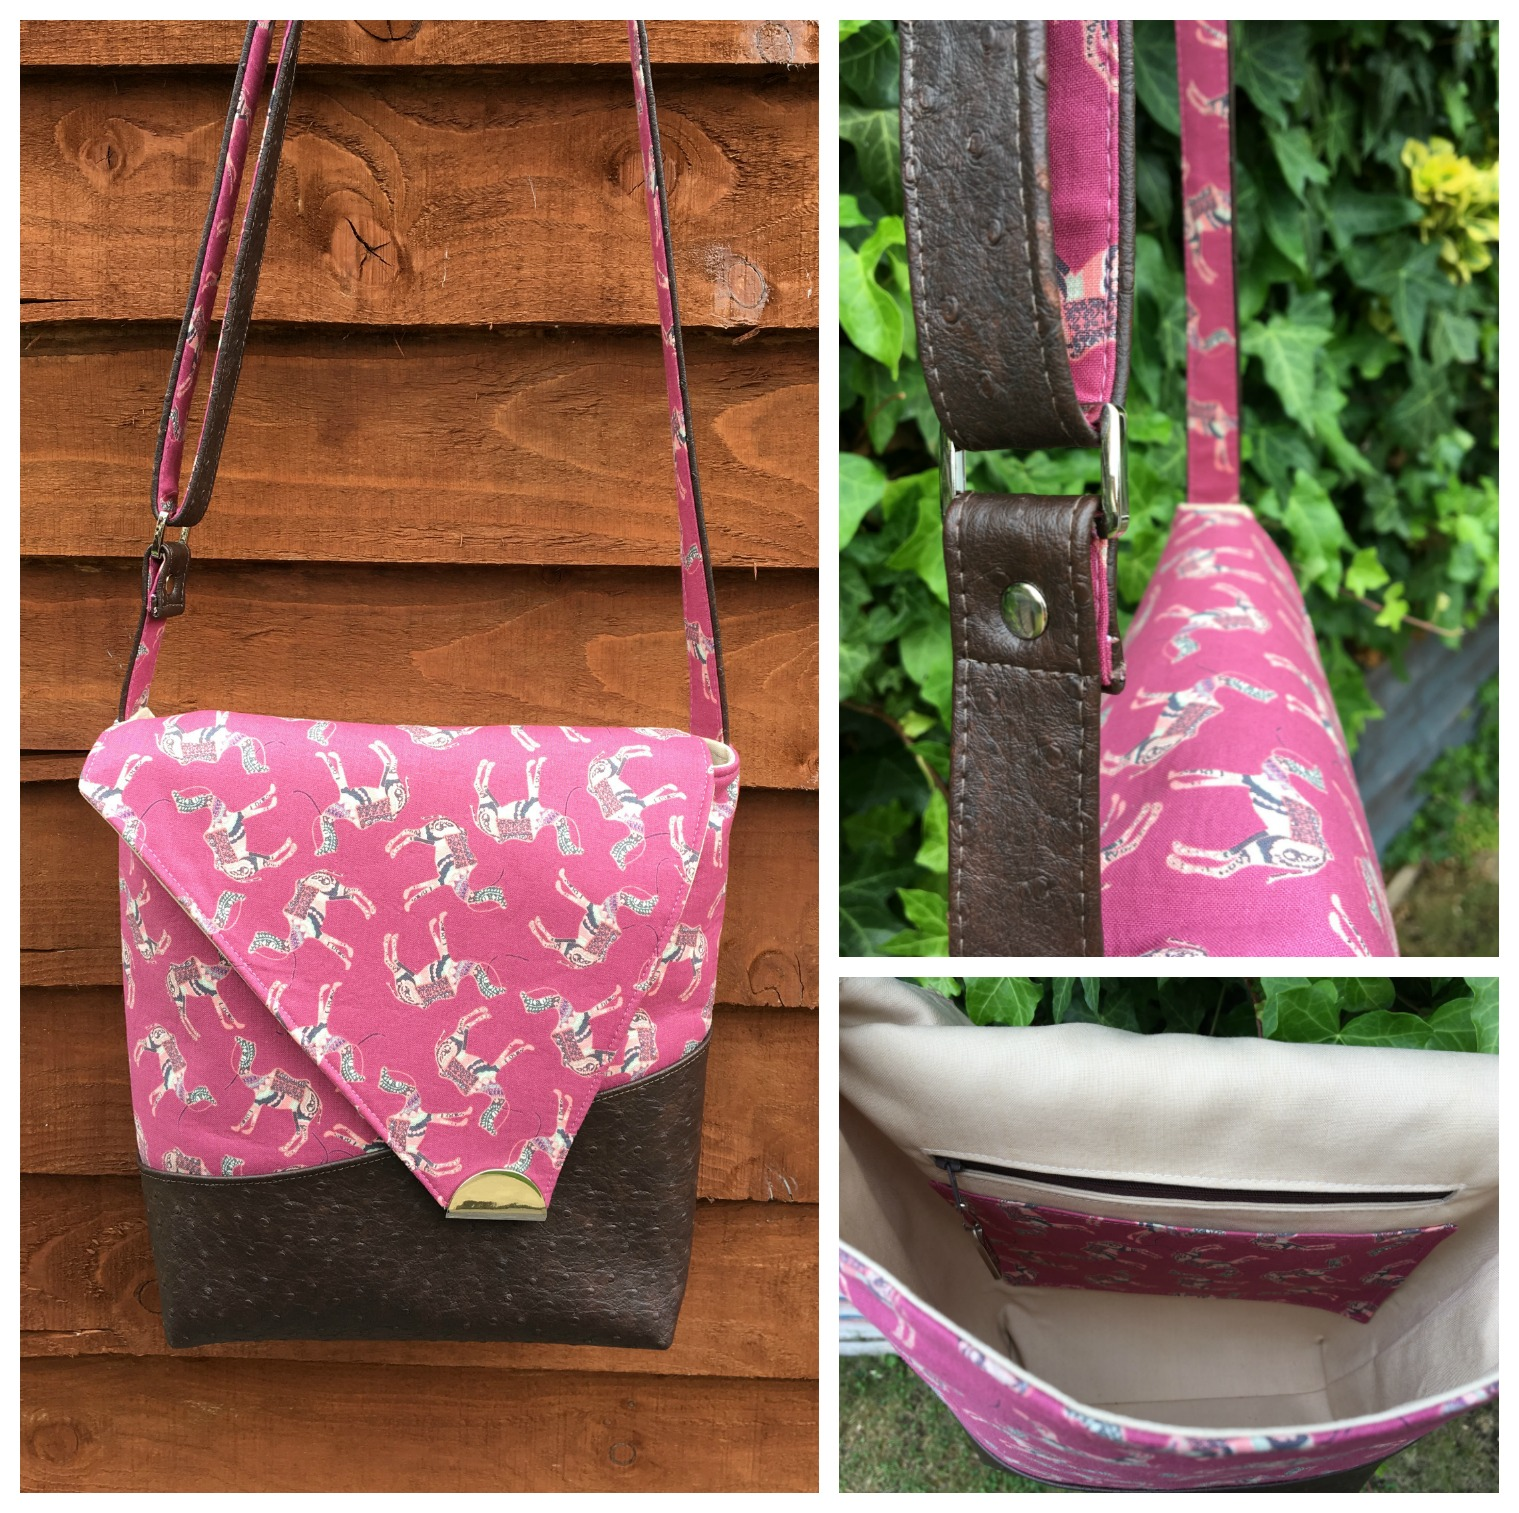 The Squiffy Sling Bag made by Sew Evey